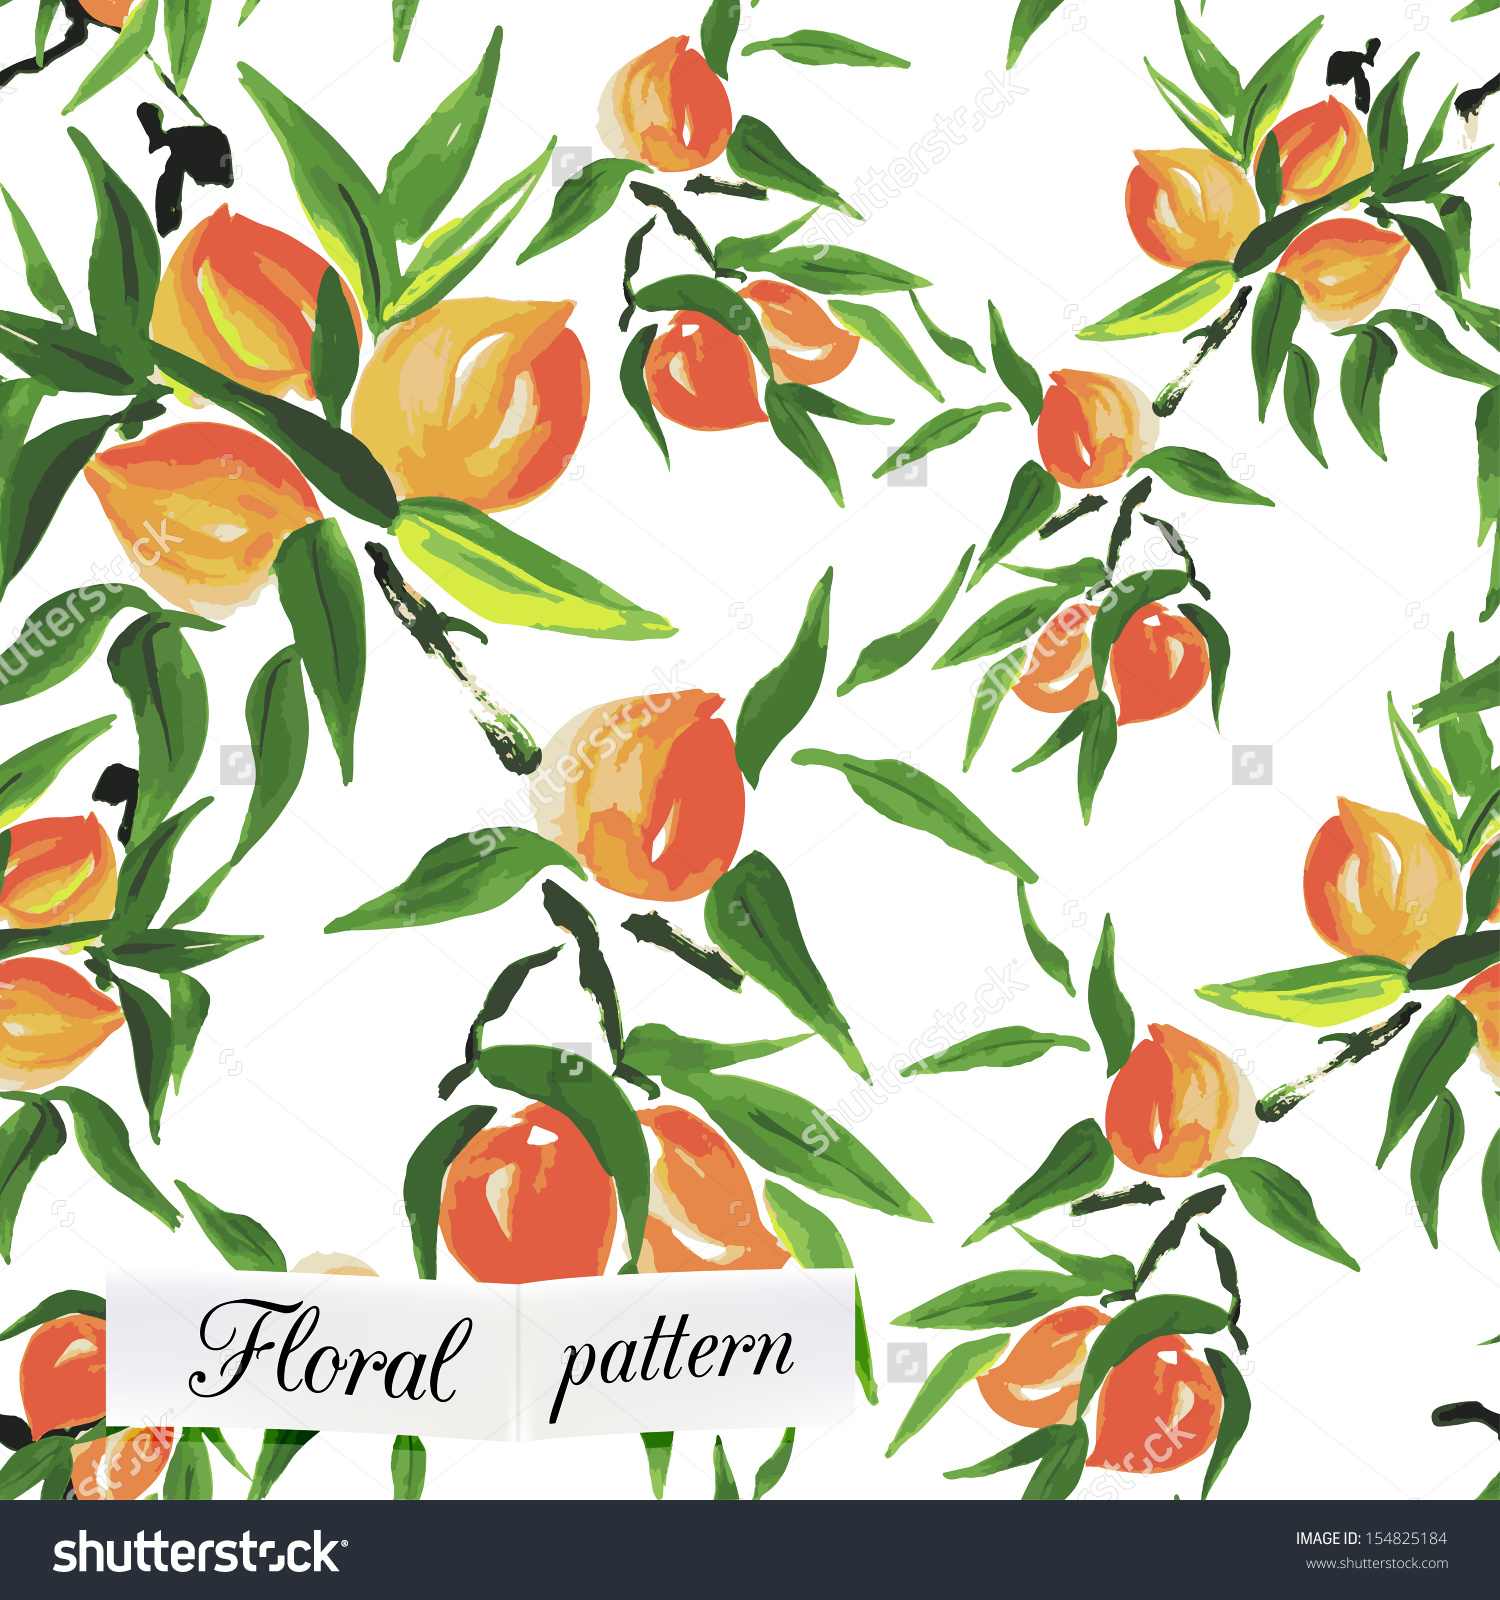 Watercolor Peach Seamless Pattern Can Be Stock Vector 154825184.